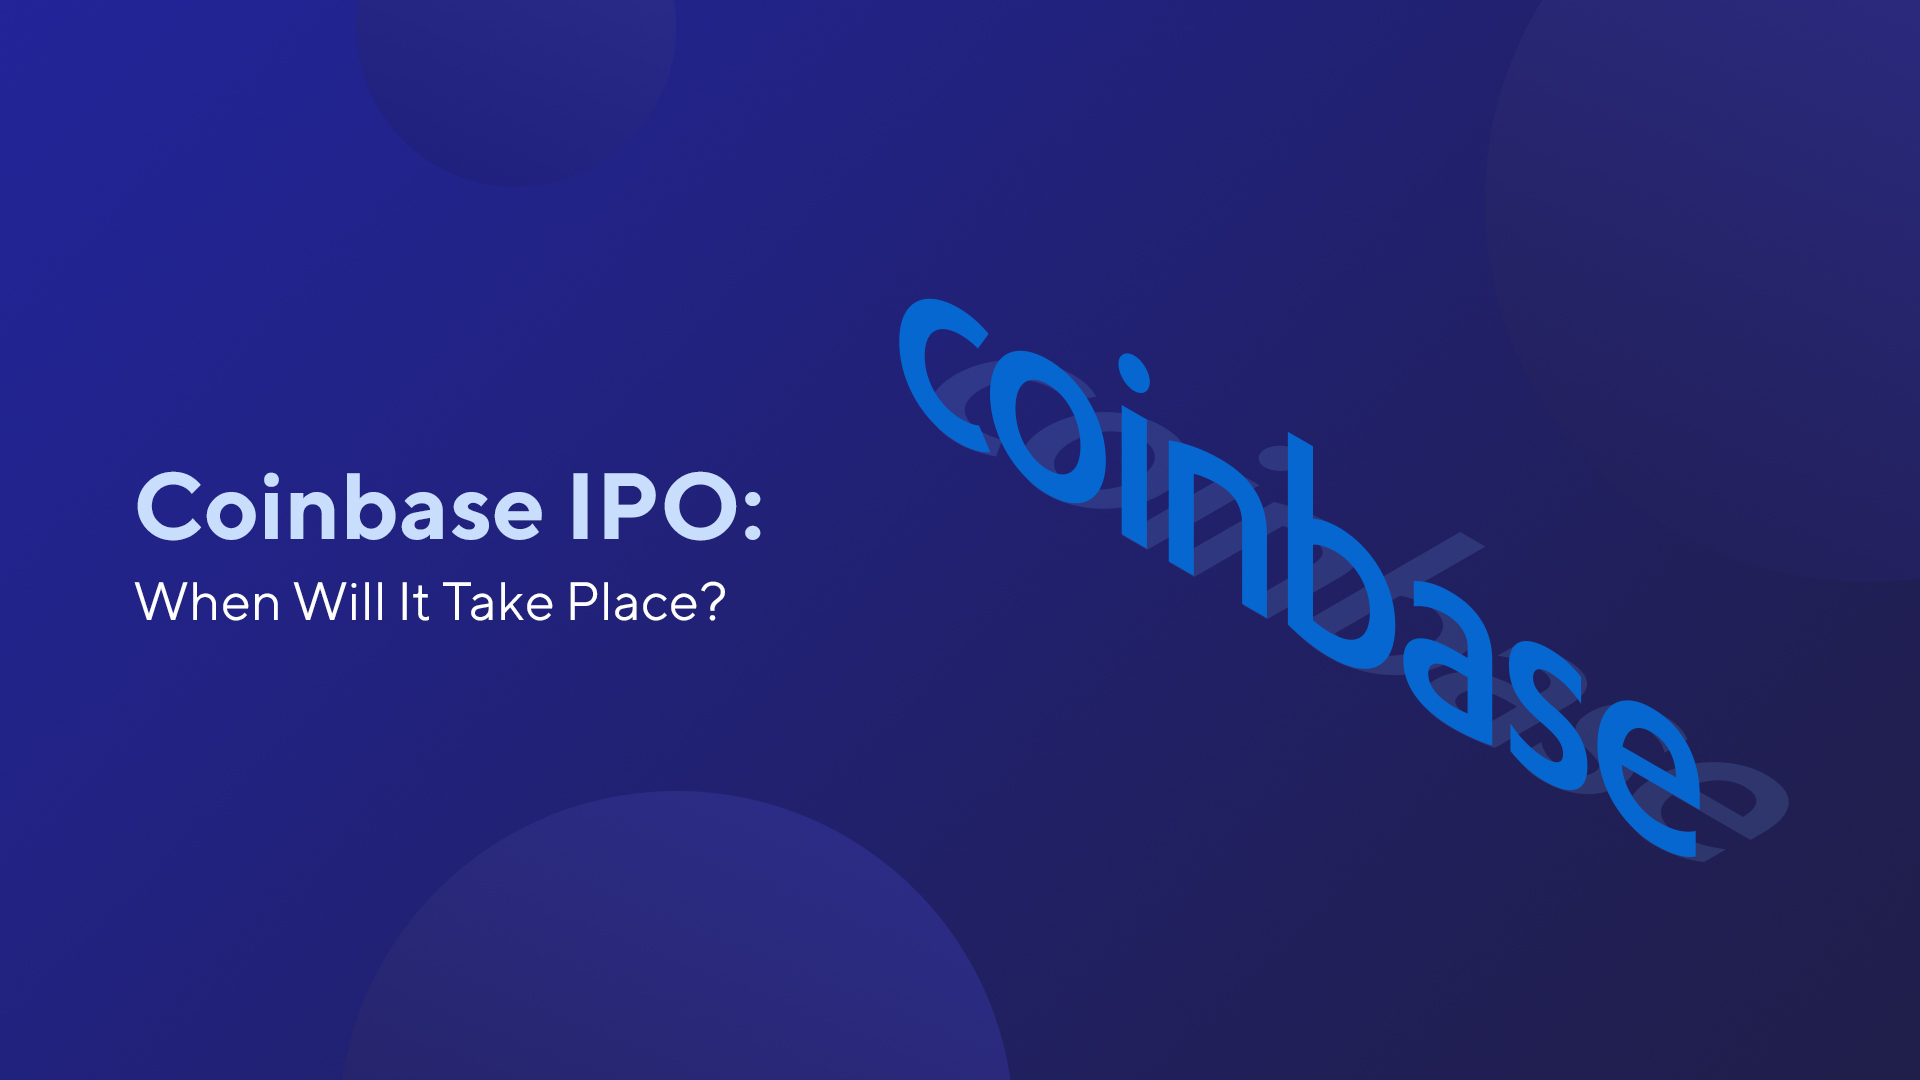 Coinbase IPO: When Will It Take Place?